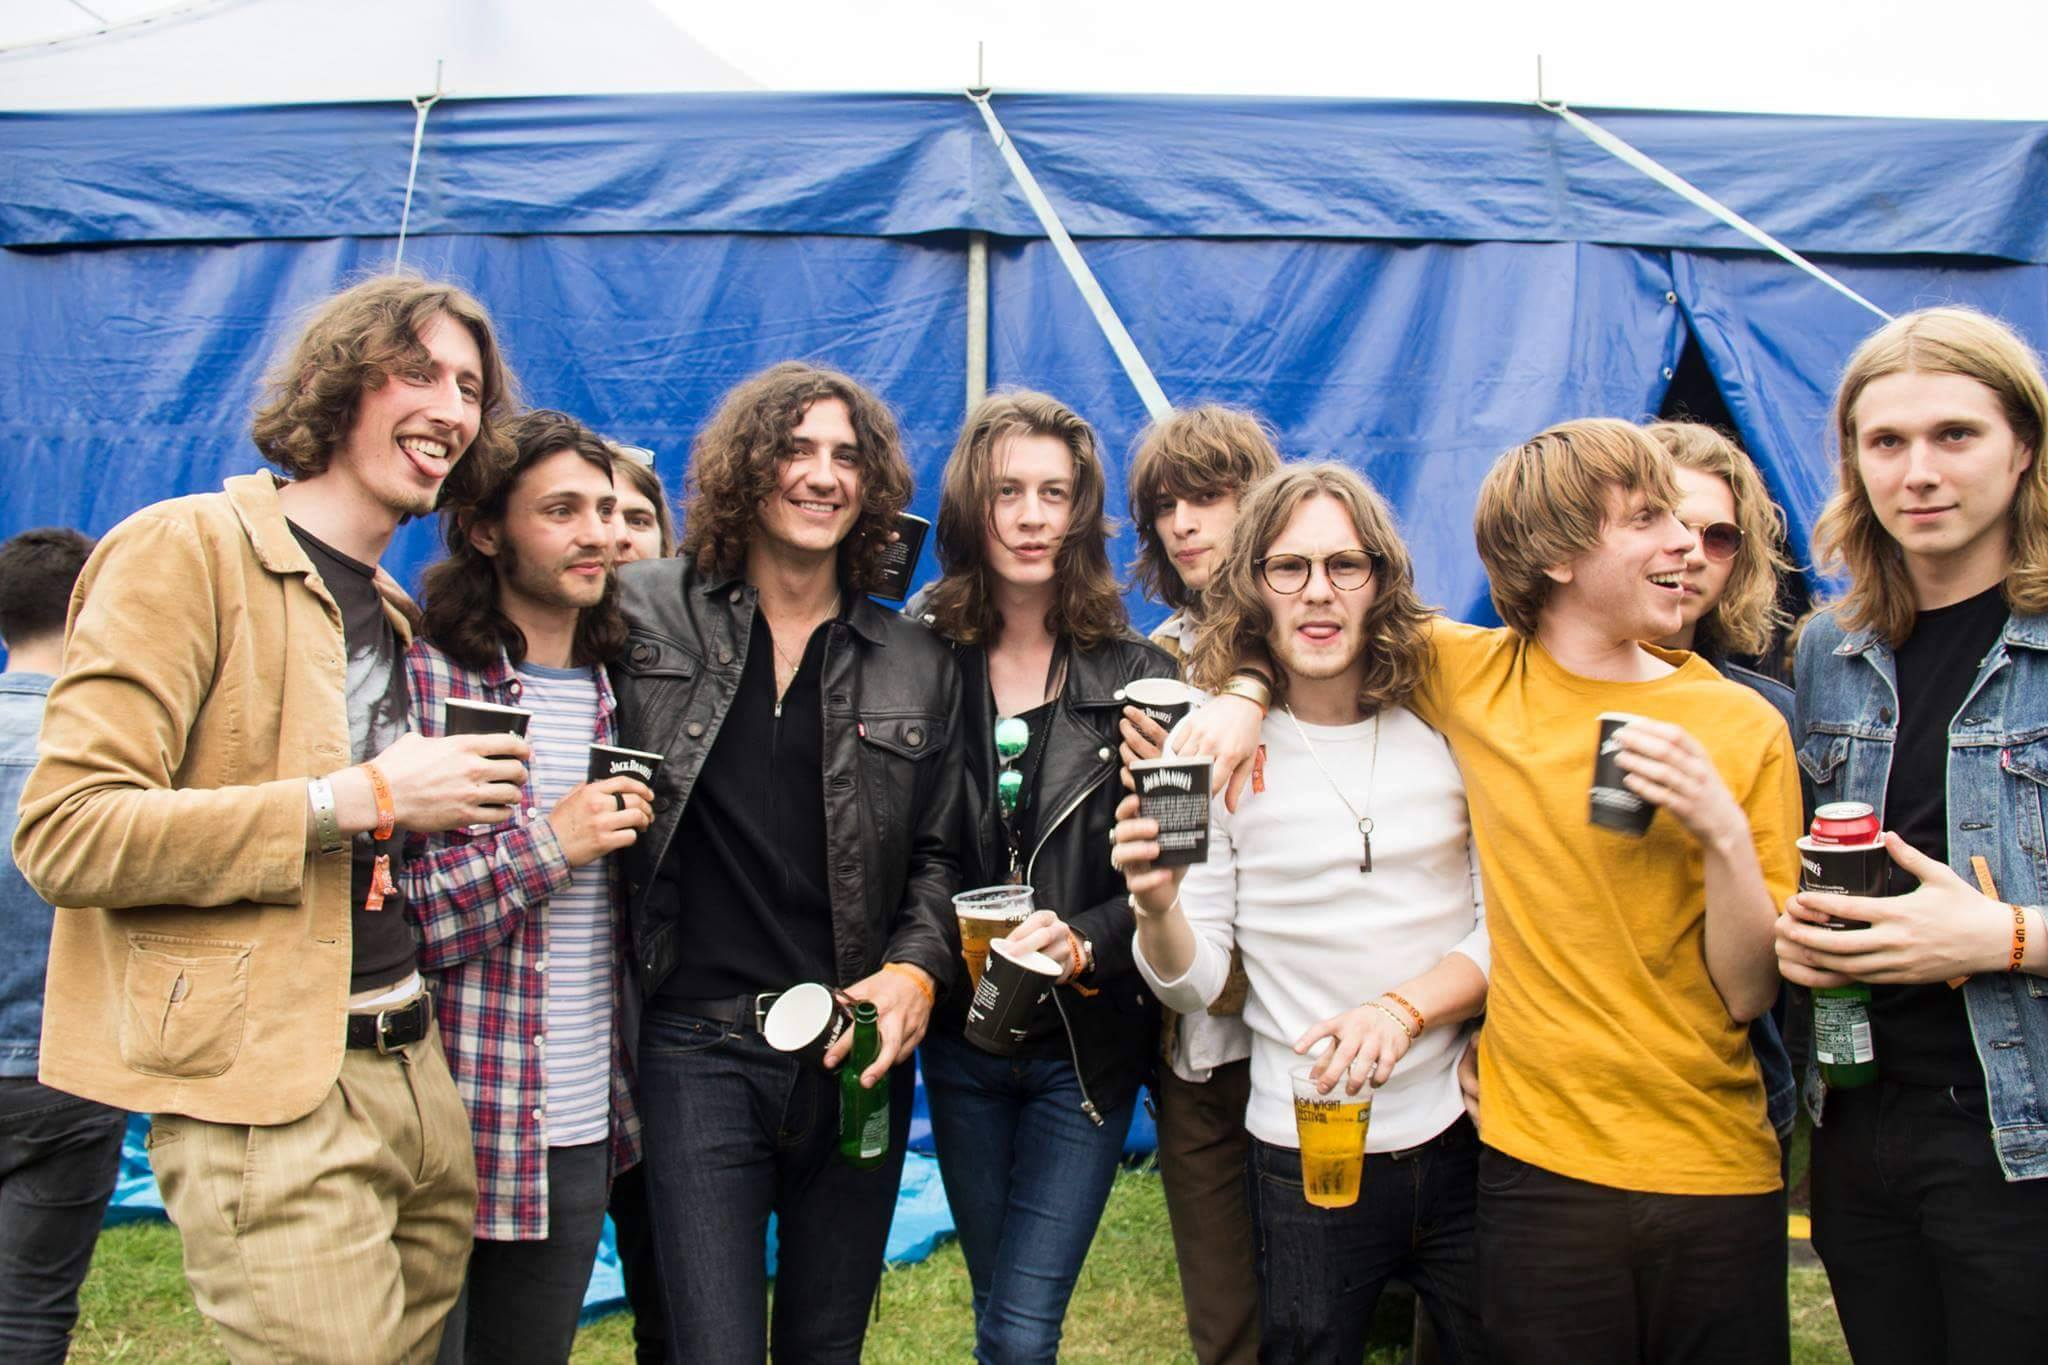 Blossoms backstage at Isle Of Wight festival shot by Katie Willoughby.